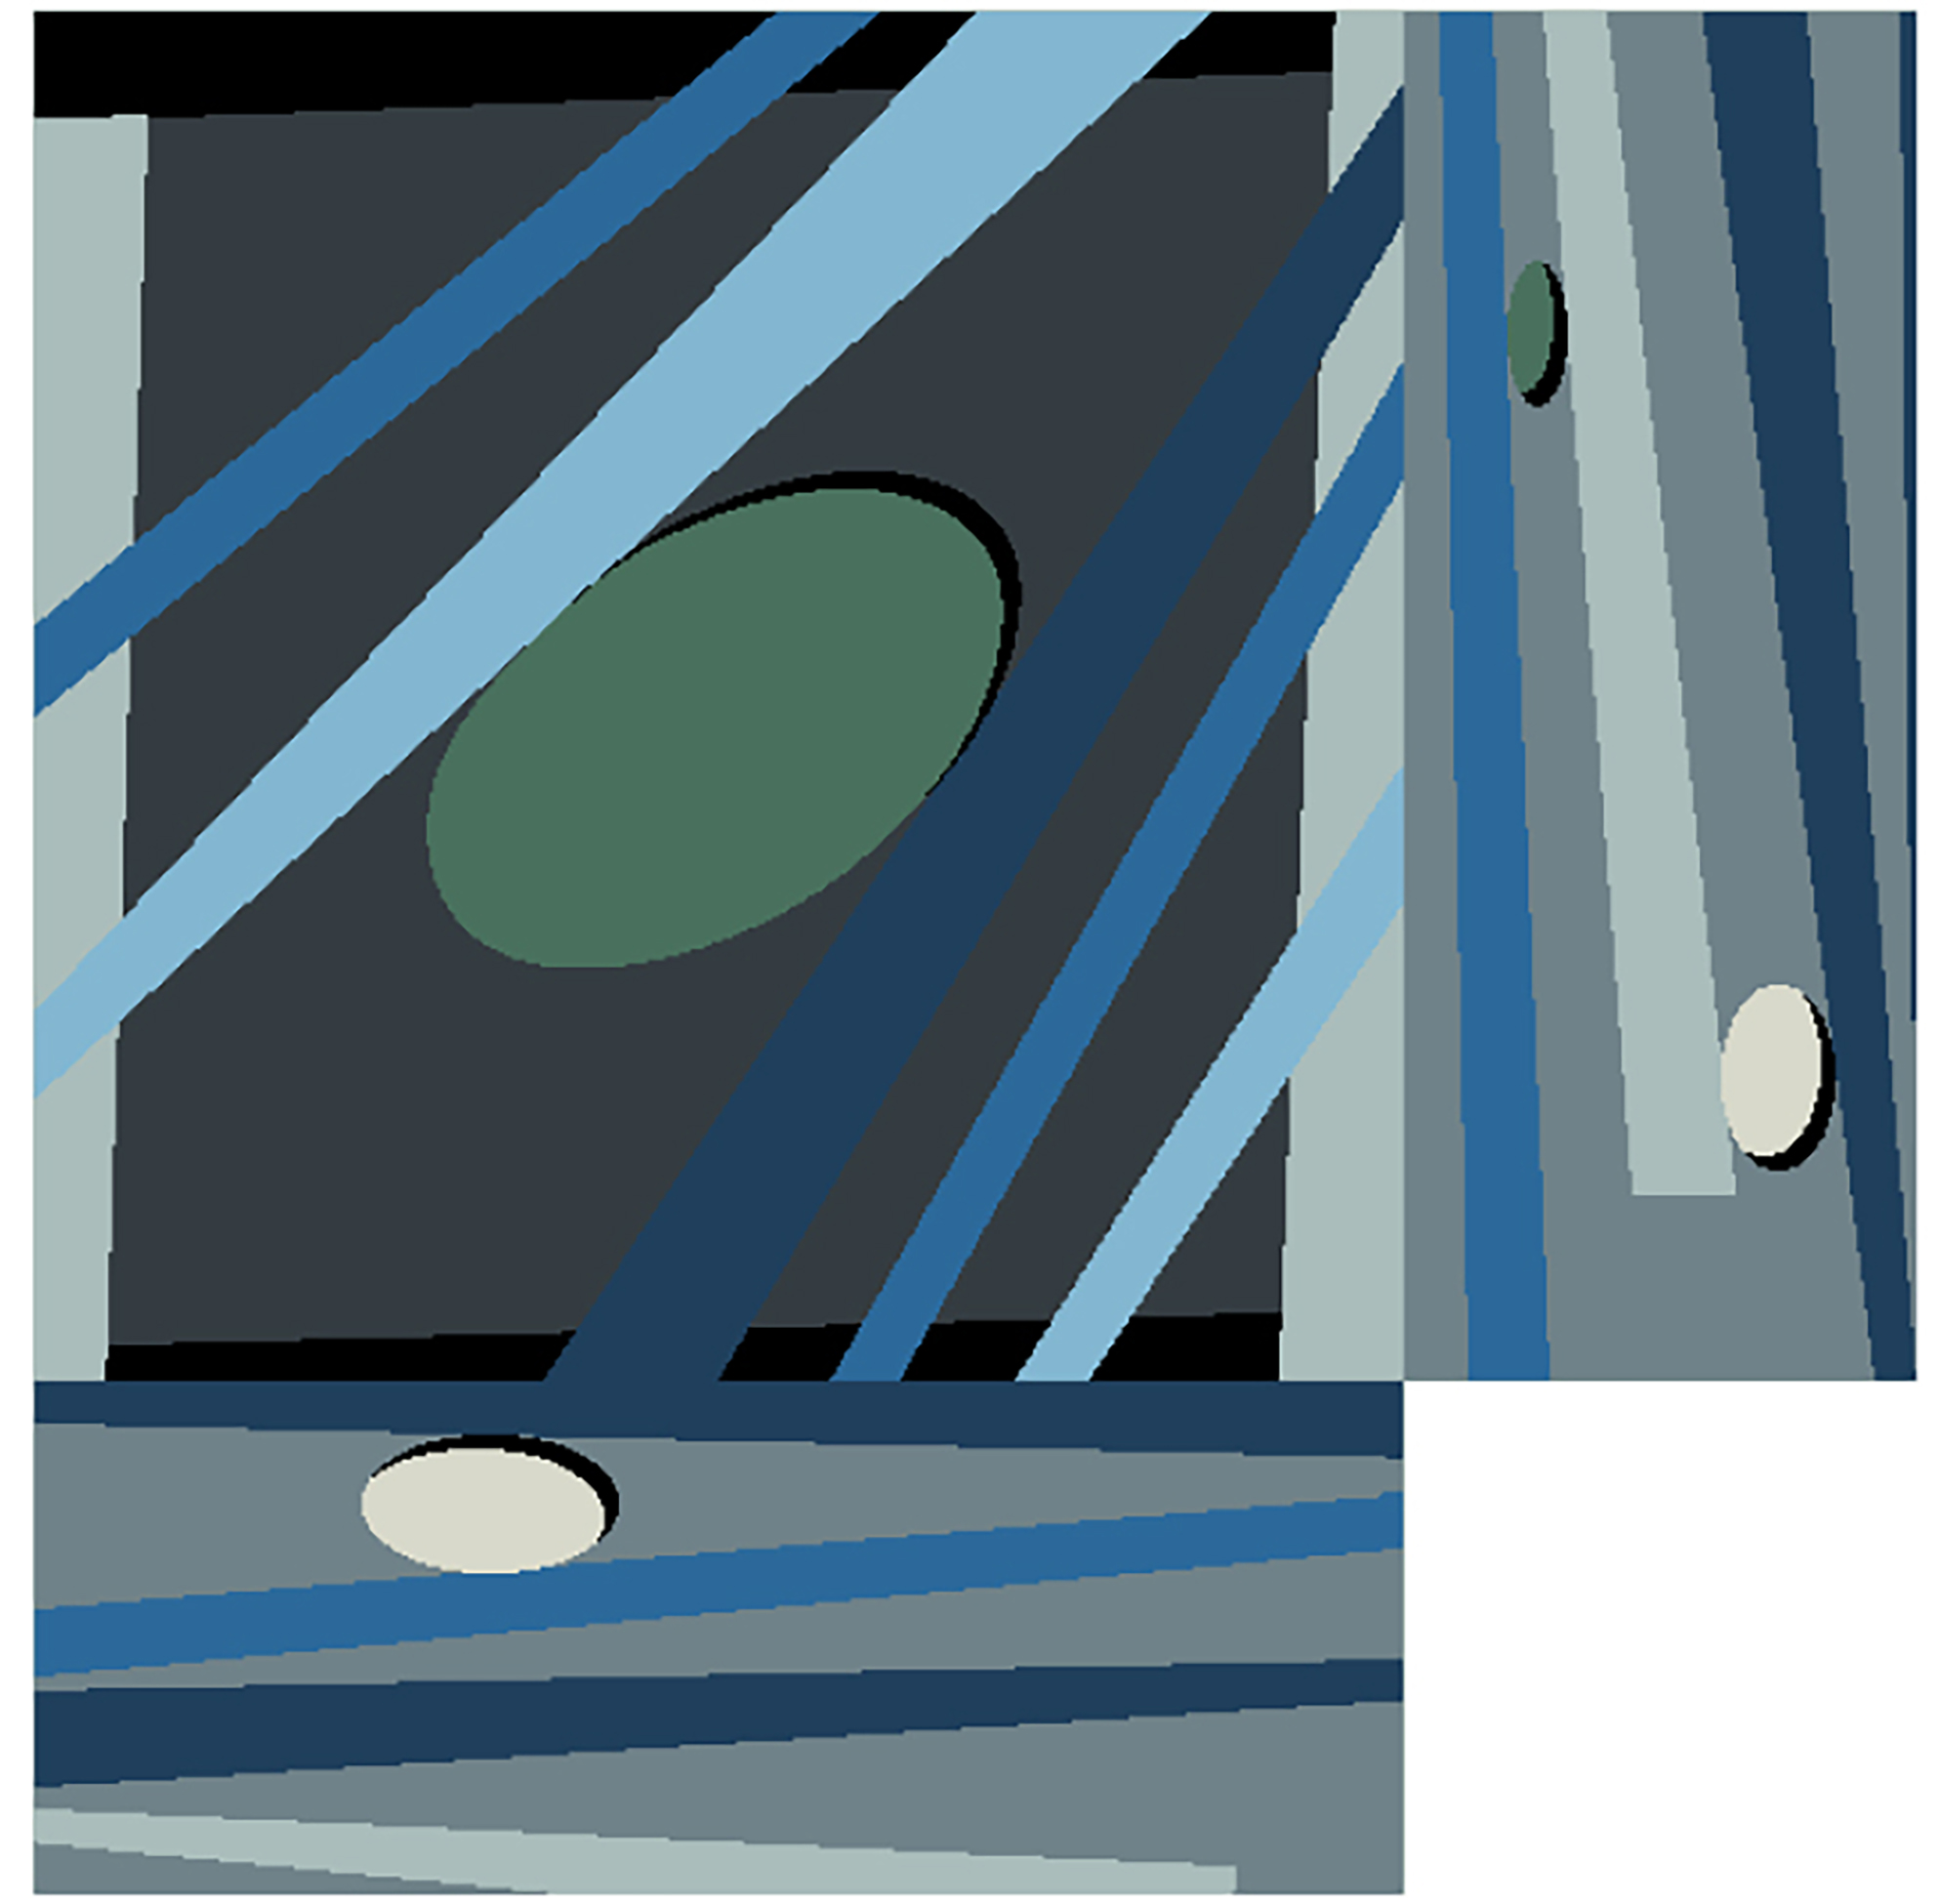 Abstracture-IMAGE 10.jpg